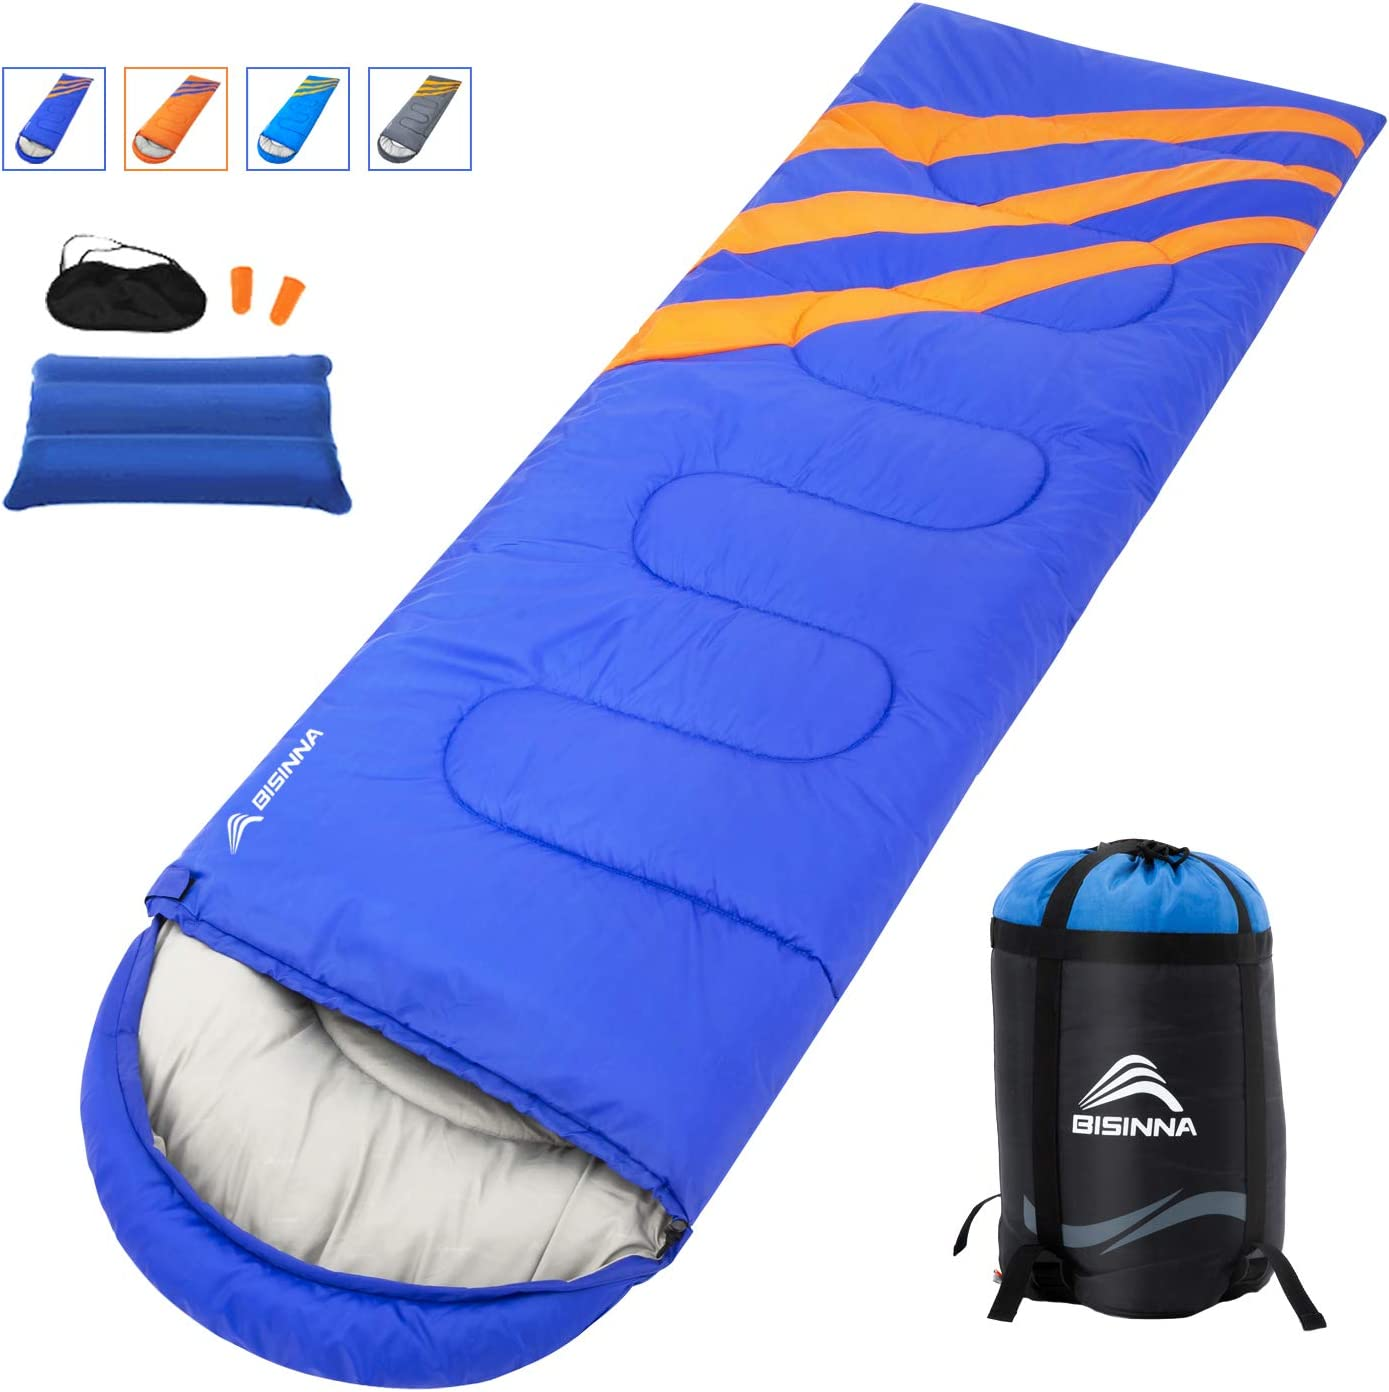 BISINNA Camping Sleeping Bag-3 Season Warm Cool Weather – Summer, Spring, Fall, Waterproof,Lightweight for Kids,Girls, Boys, Teens Adults-Great for Indoor Outdoor Use, Backpacking Hiking